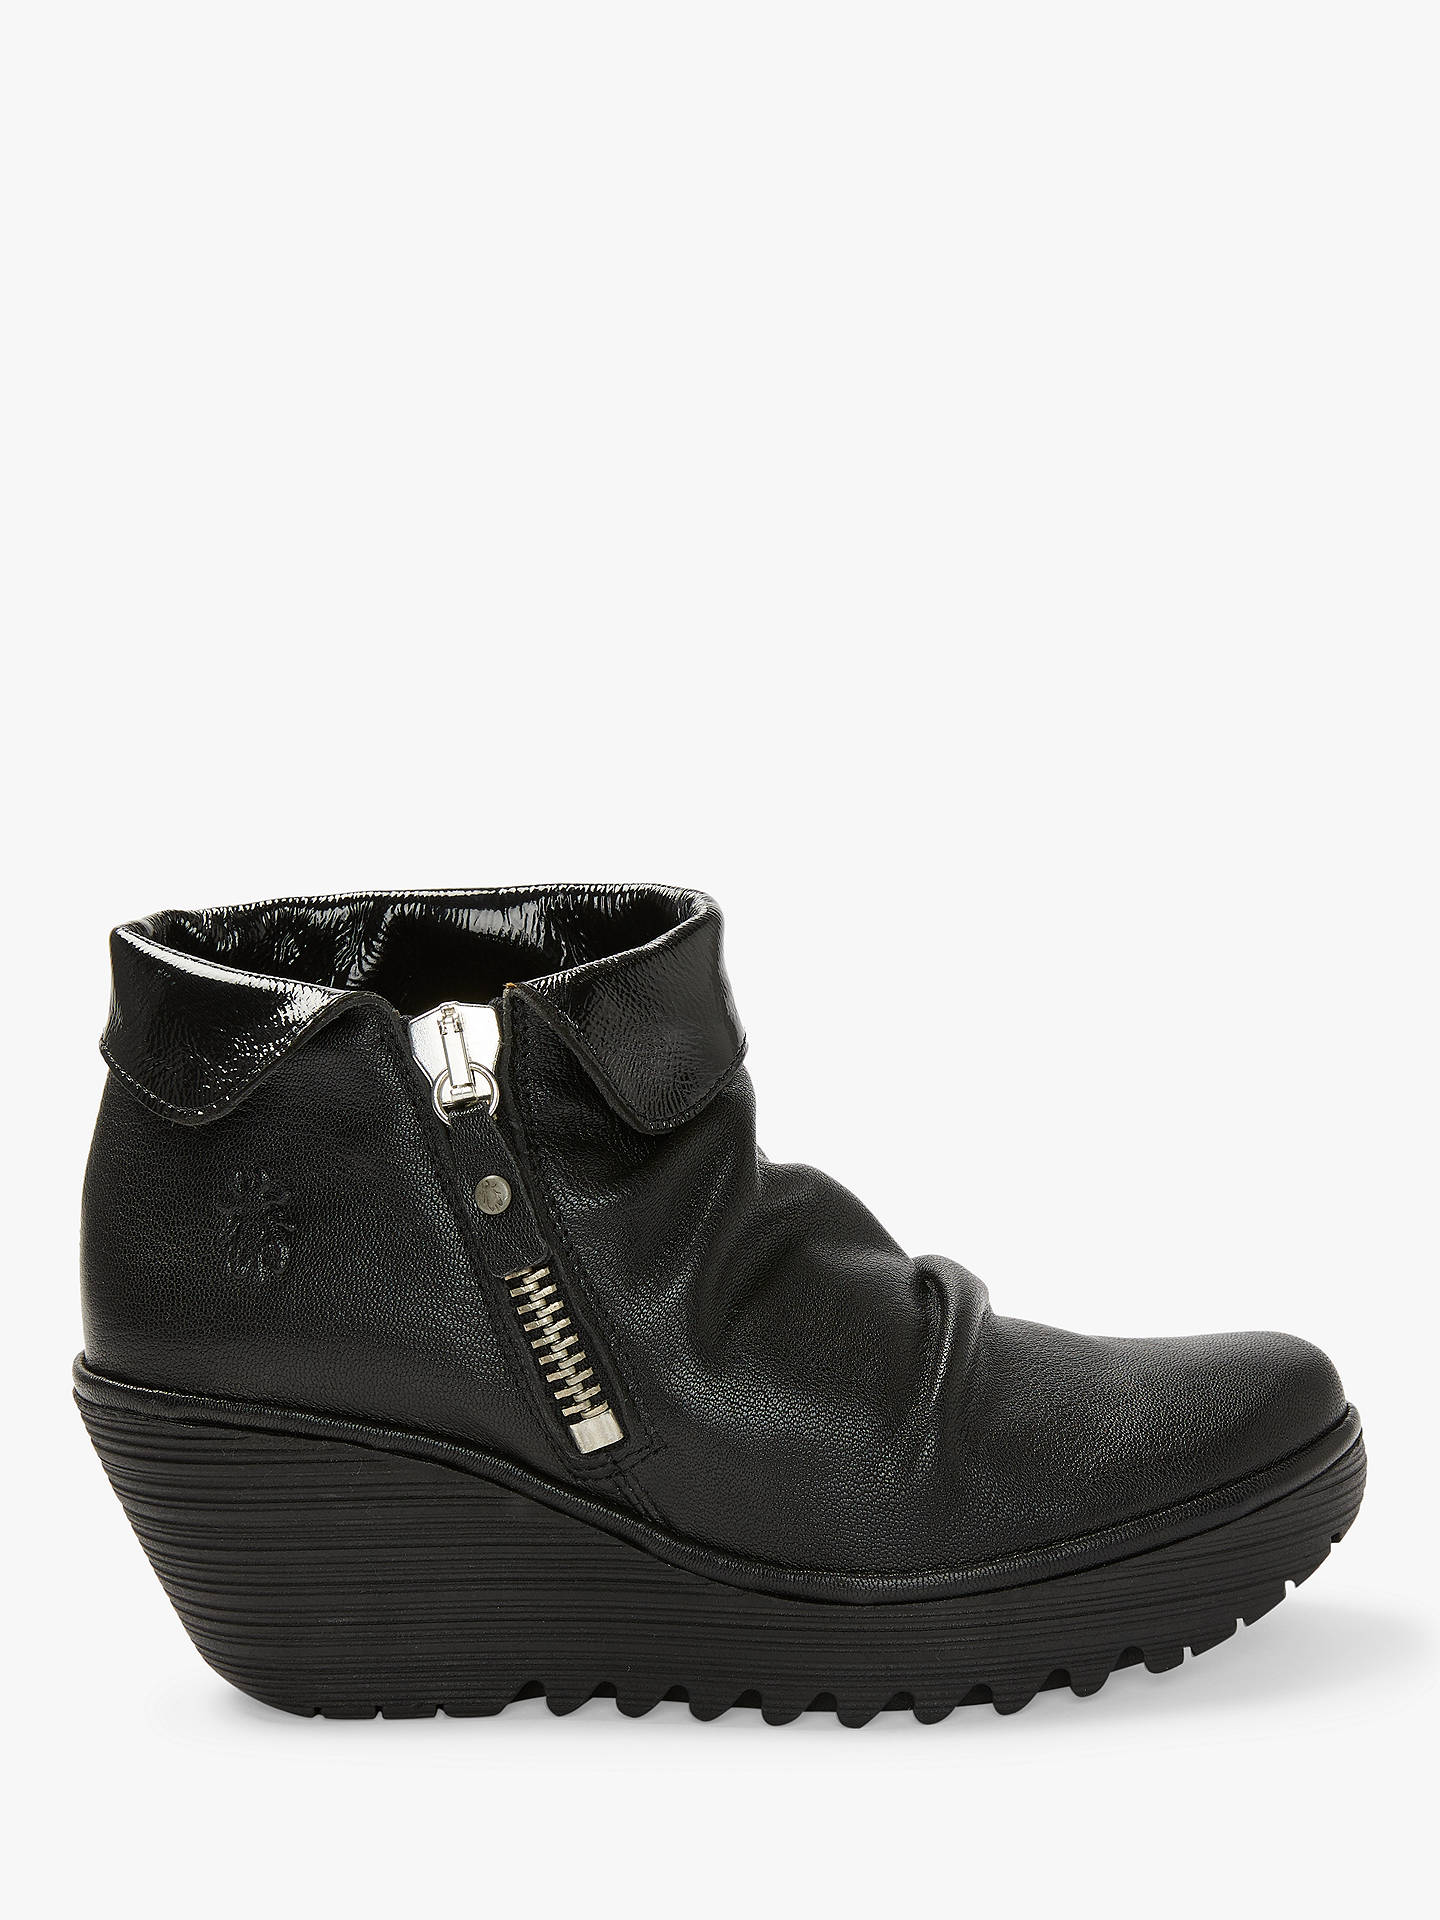 a9eb2cca0f9 Buy Fly London YOXI755Fly Folded Top Ankle Boots